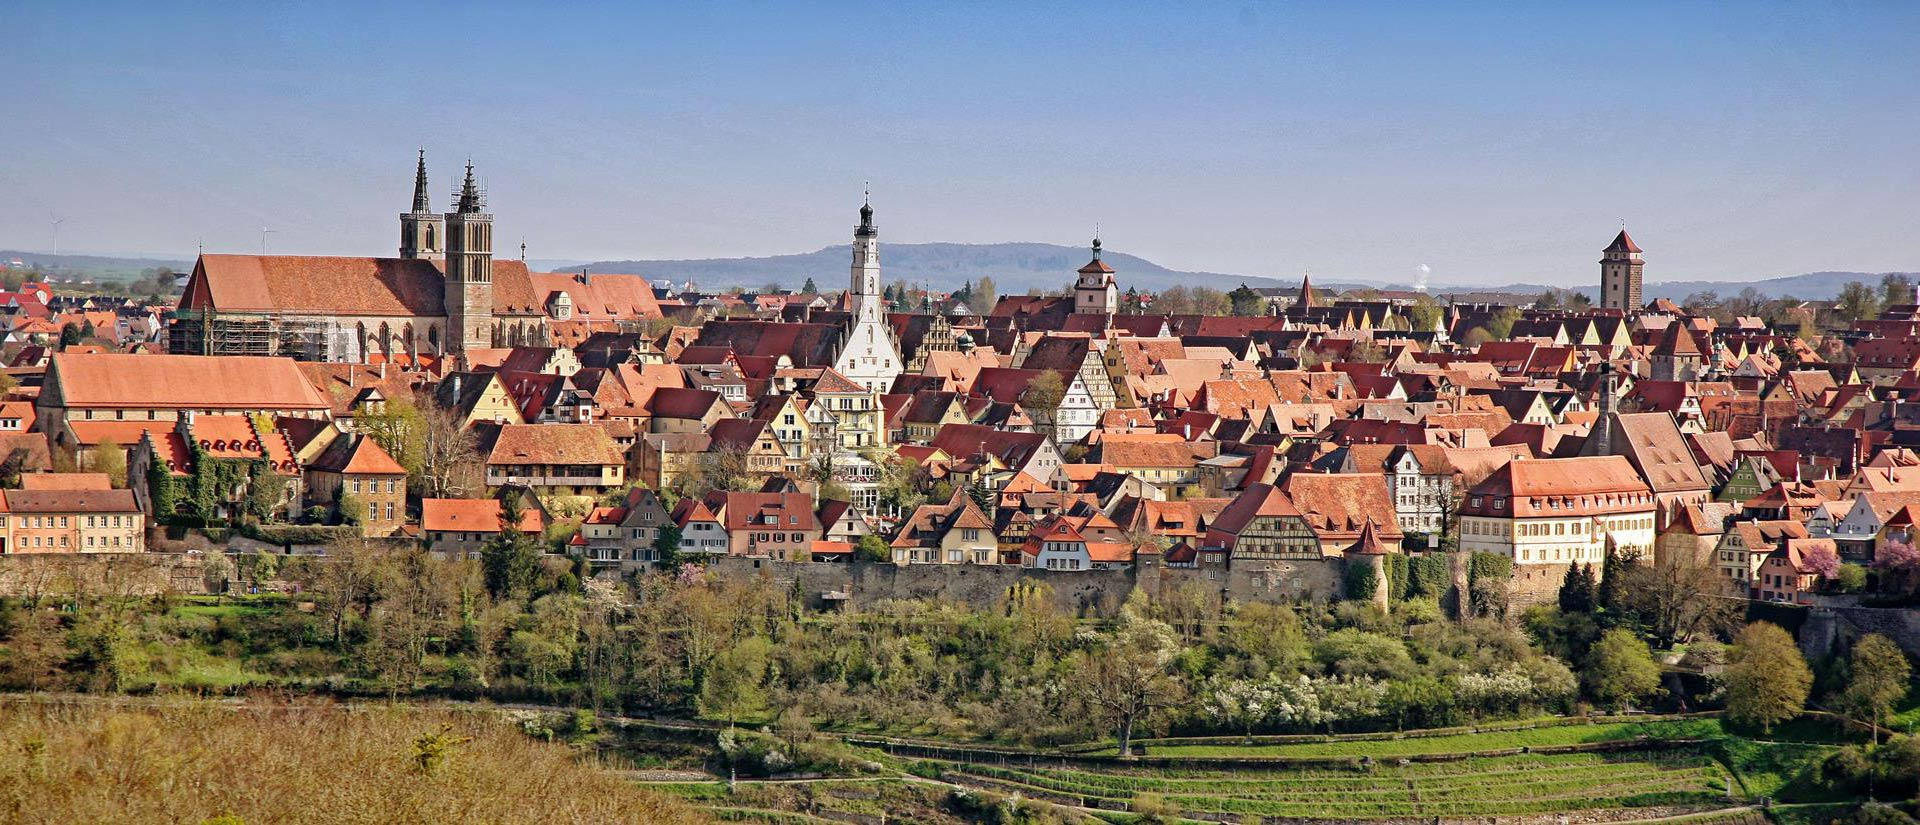 points of interest in rothenburg ob der tauber germany. Black Bedroom Furniture Sets. Home Design Ideas